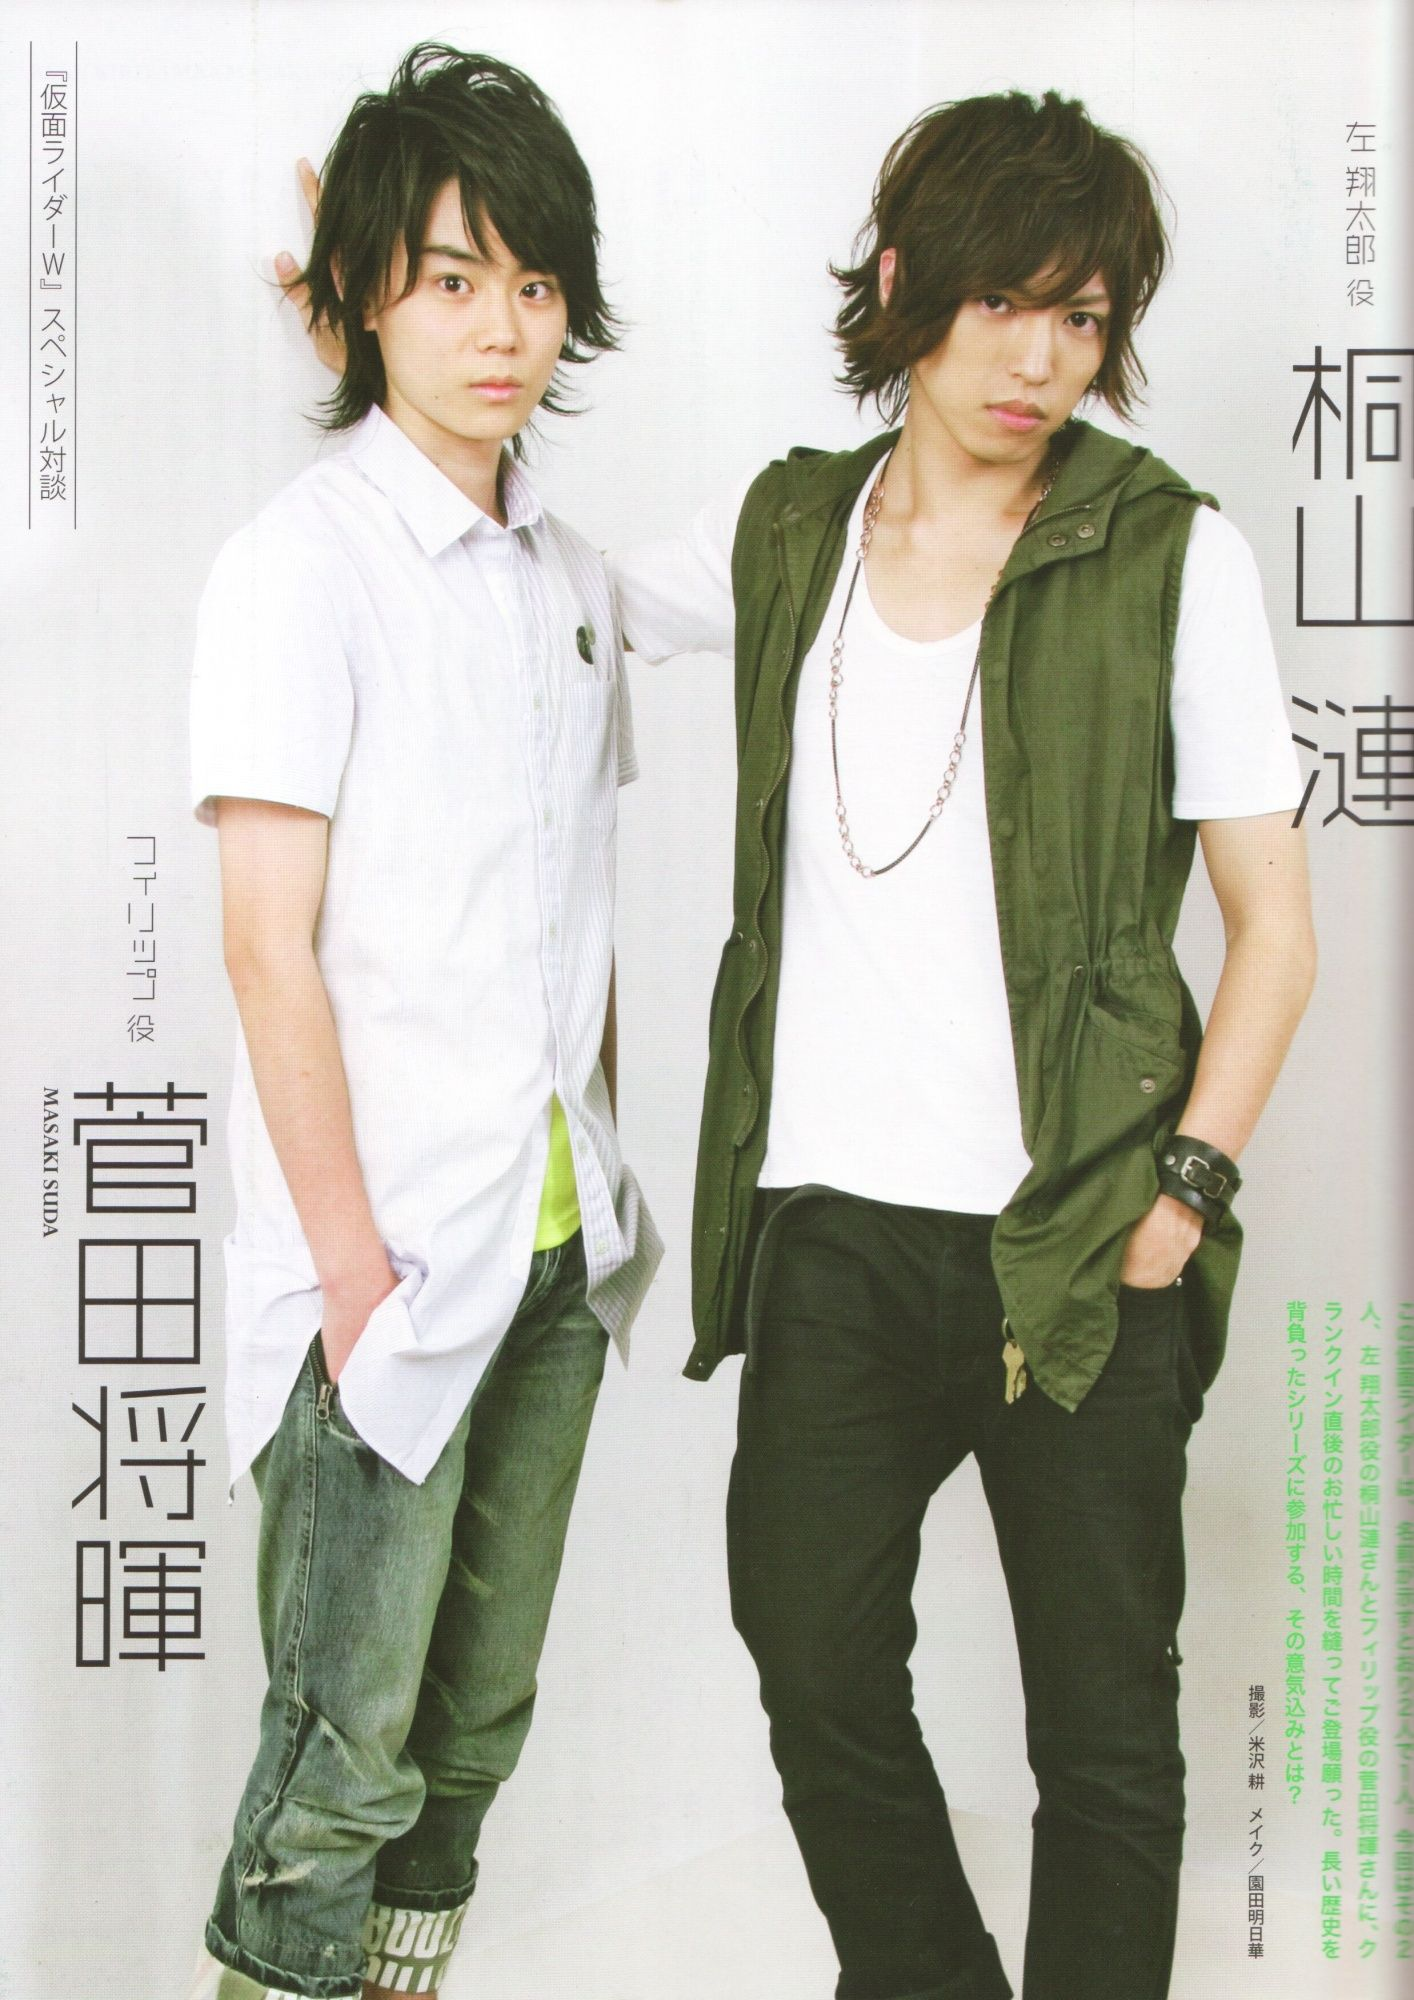 MASAKI SUDA & KIRIYAMA RENN VERY CUTE 2GETHER | Super ...